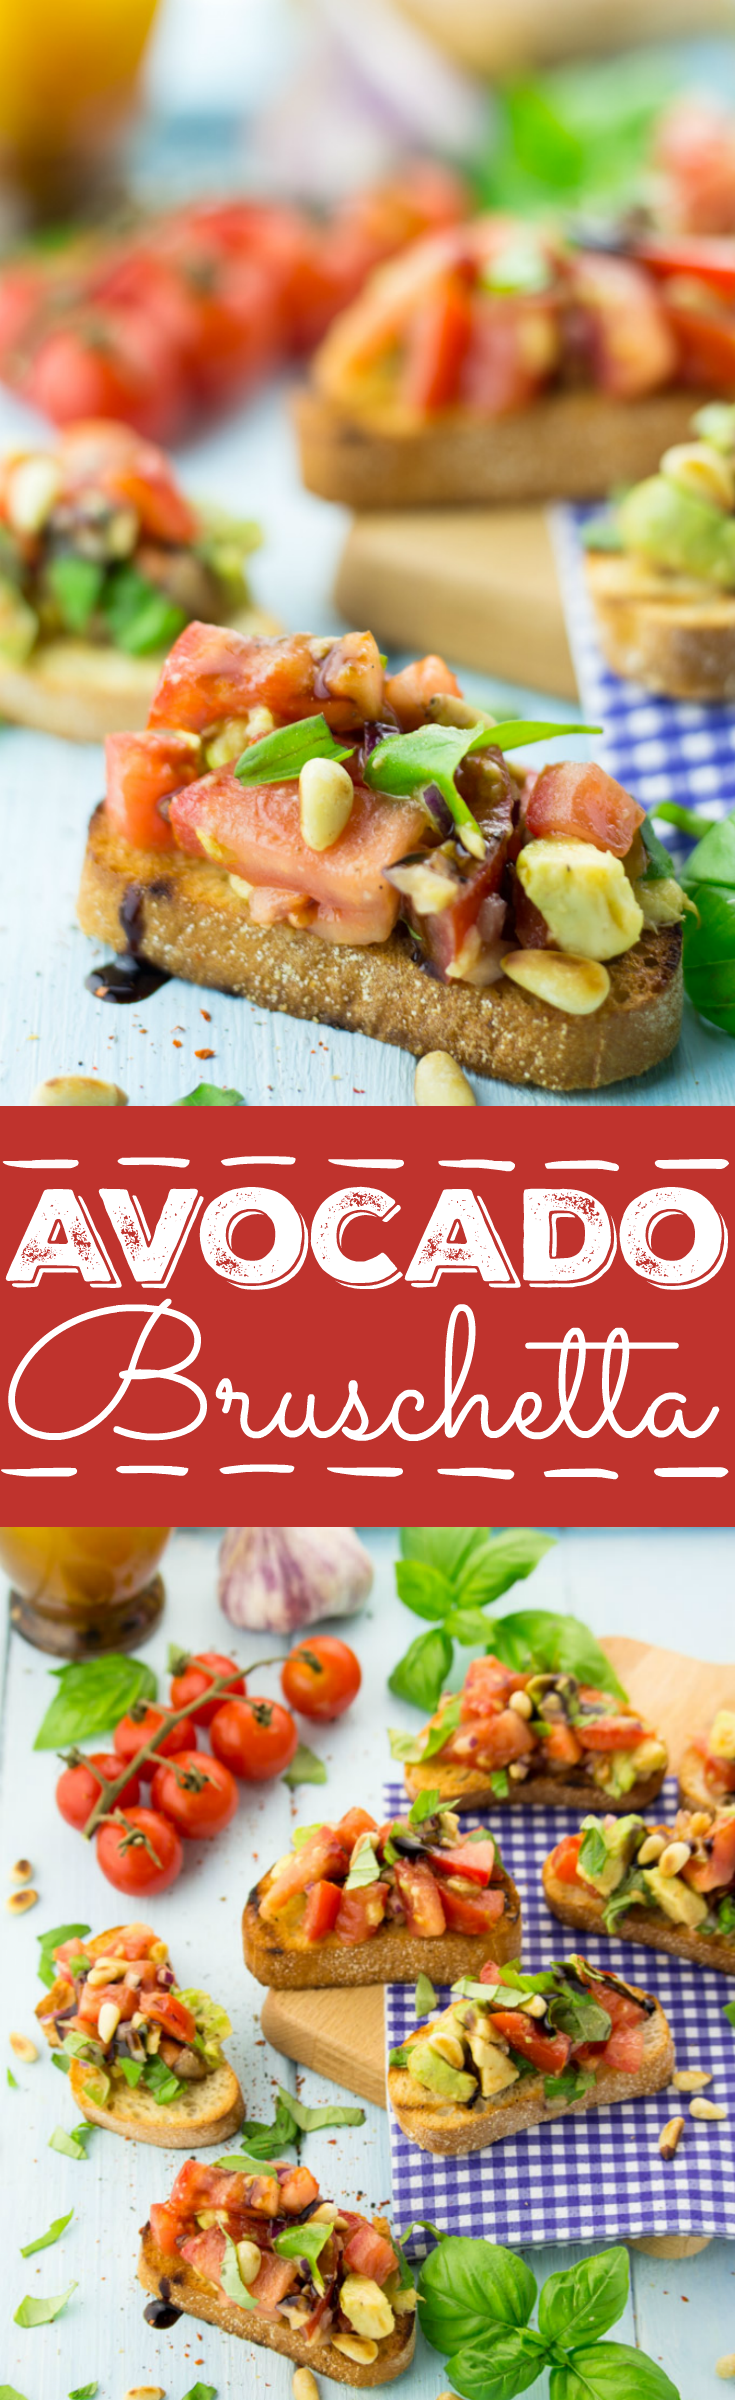 These vegan tomato and avocado bruschetta with balsamic reduction and pine nuts are perfect to embrace summer! I love bringing them along to BBQs and parties.